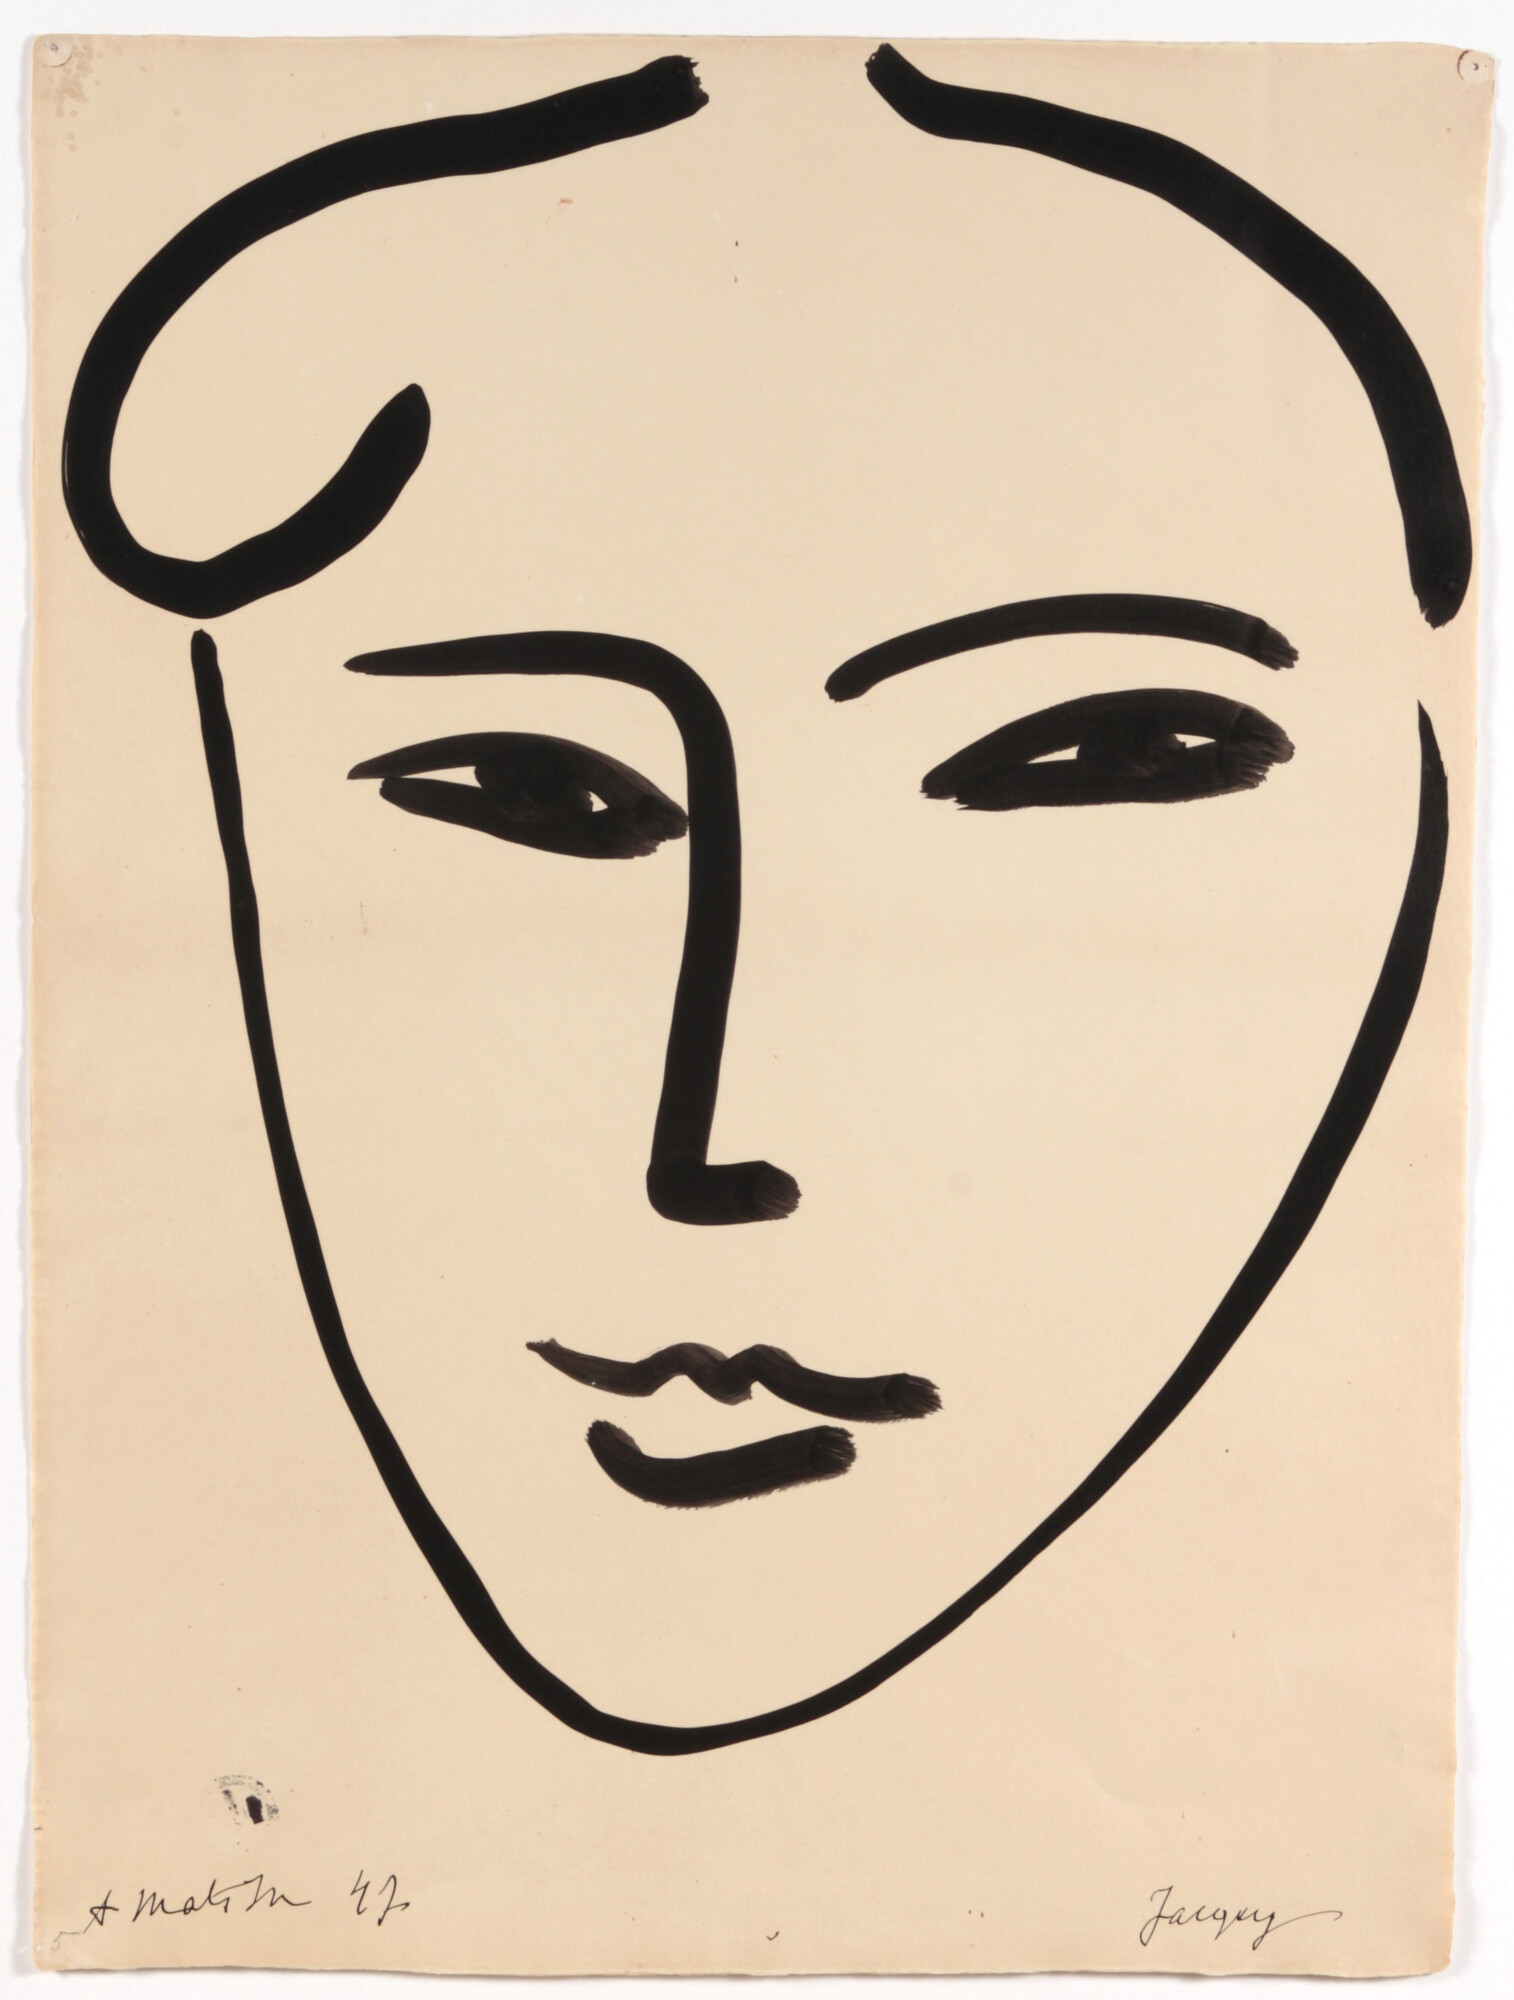 henry matisse Original limited edition prints by french 20th century artist henri matisse for sale  from goldmark in uppingham.